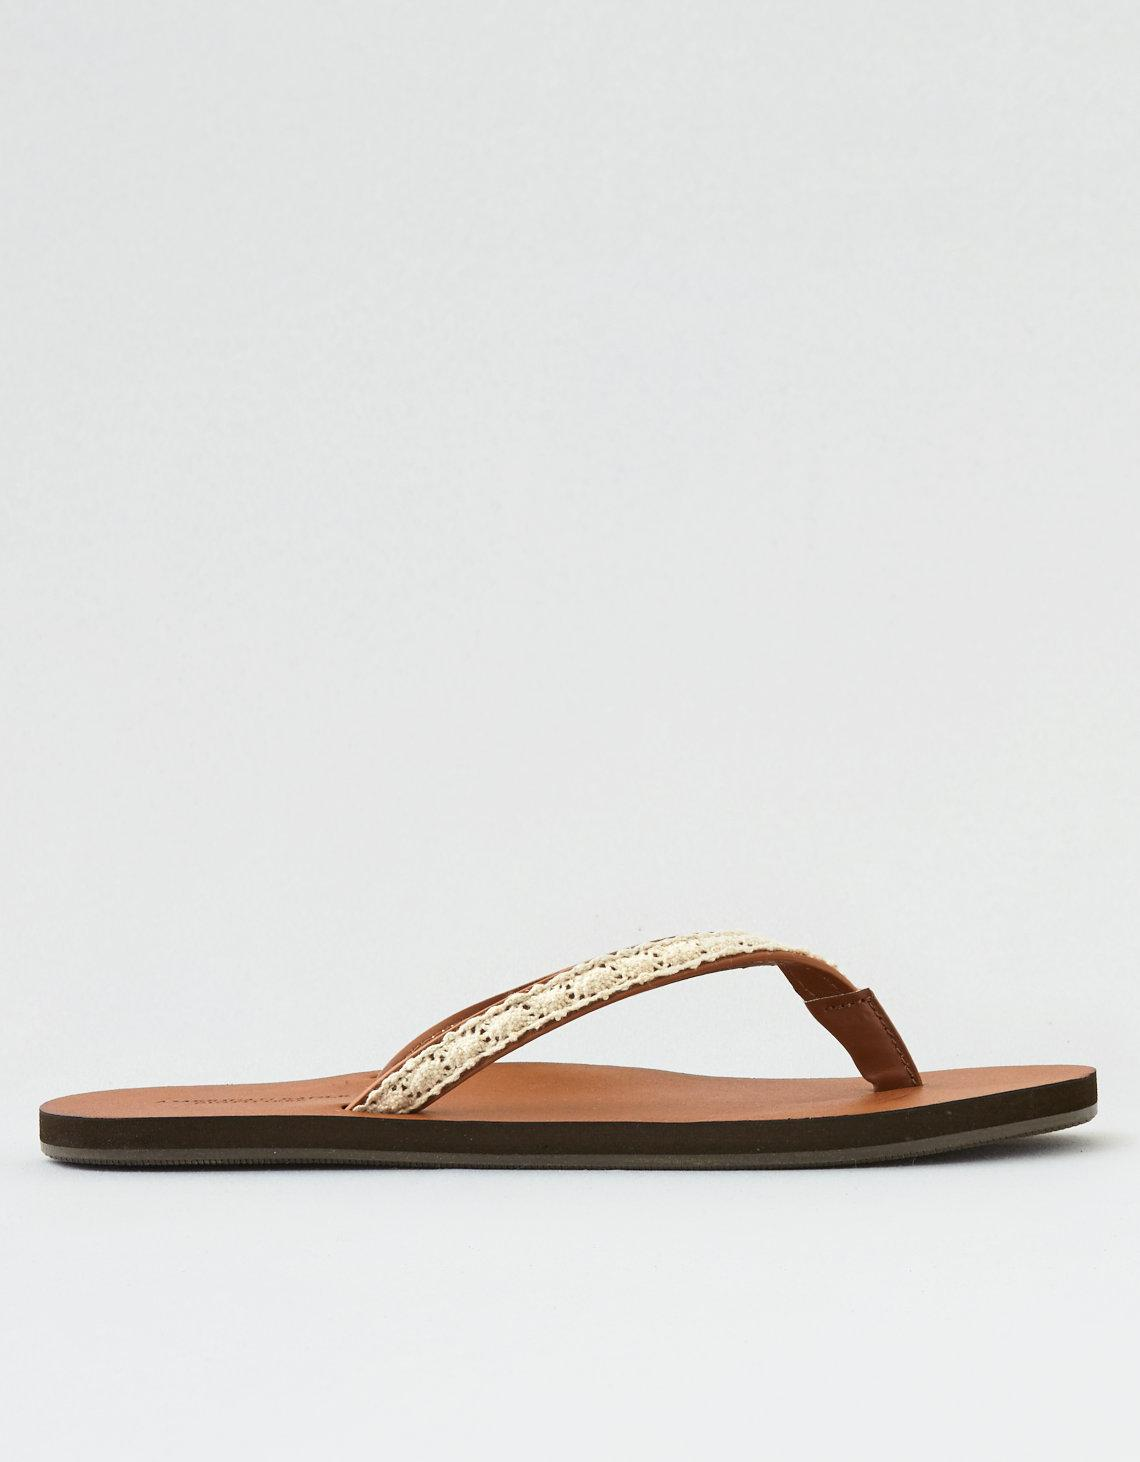 fb824e51dc4 Lyst - American Eagle Crochet Overlay Leather Flip Flop in Brown